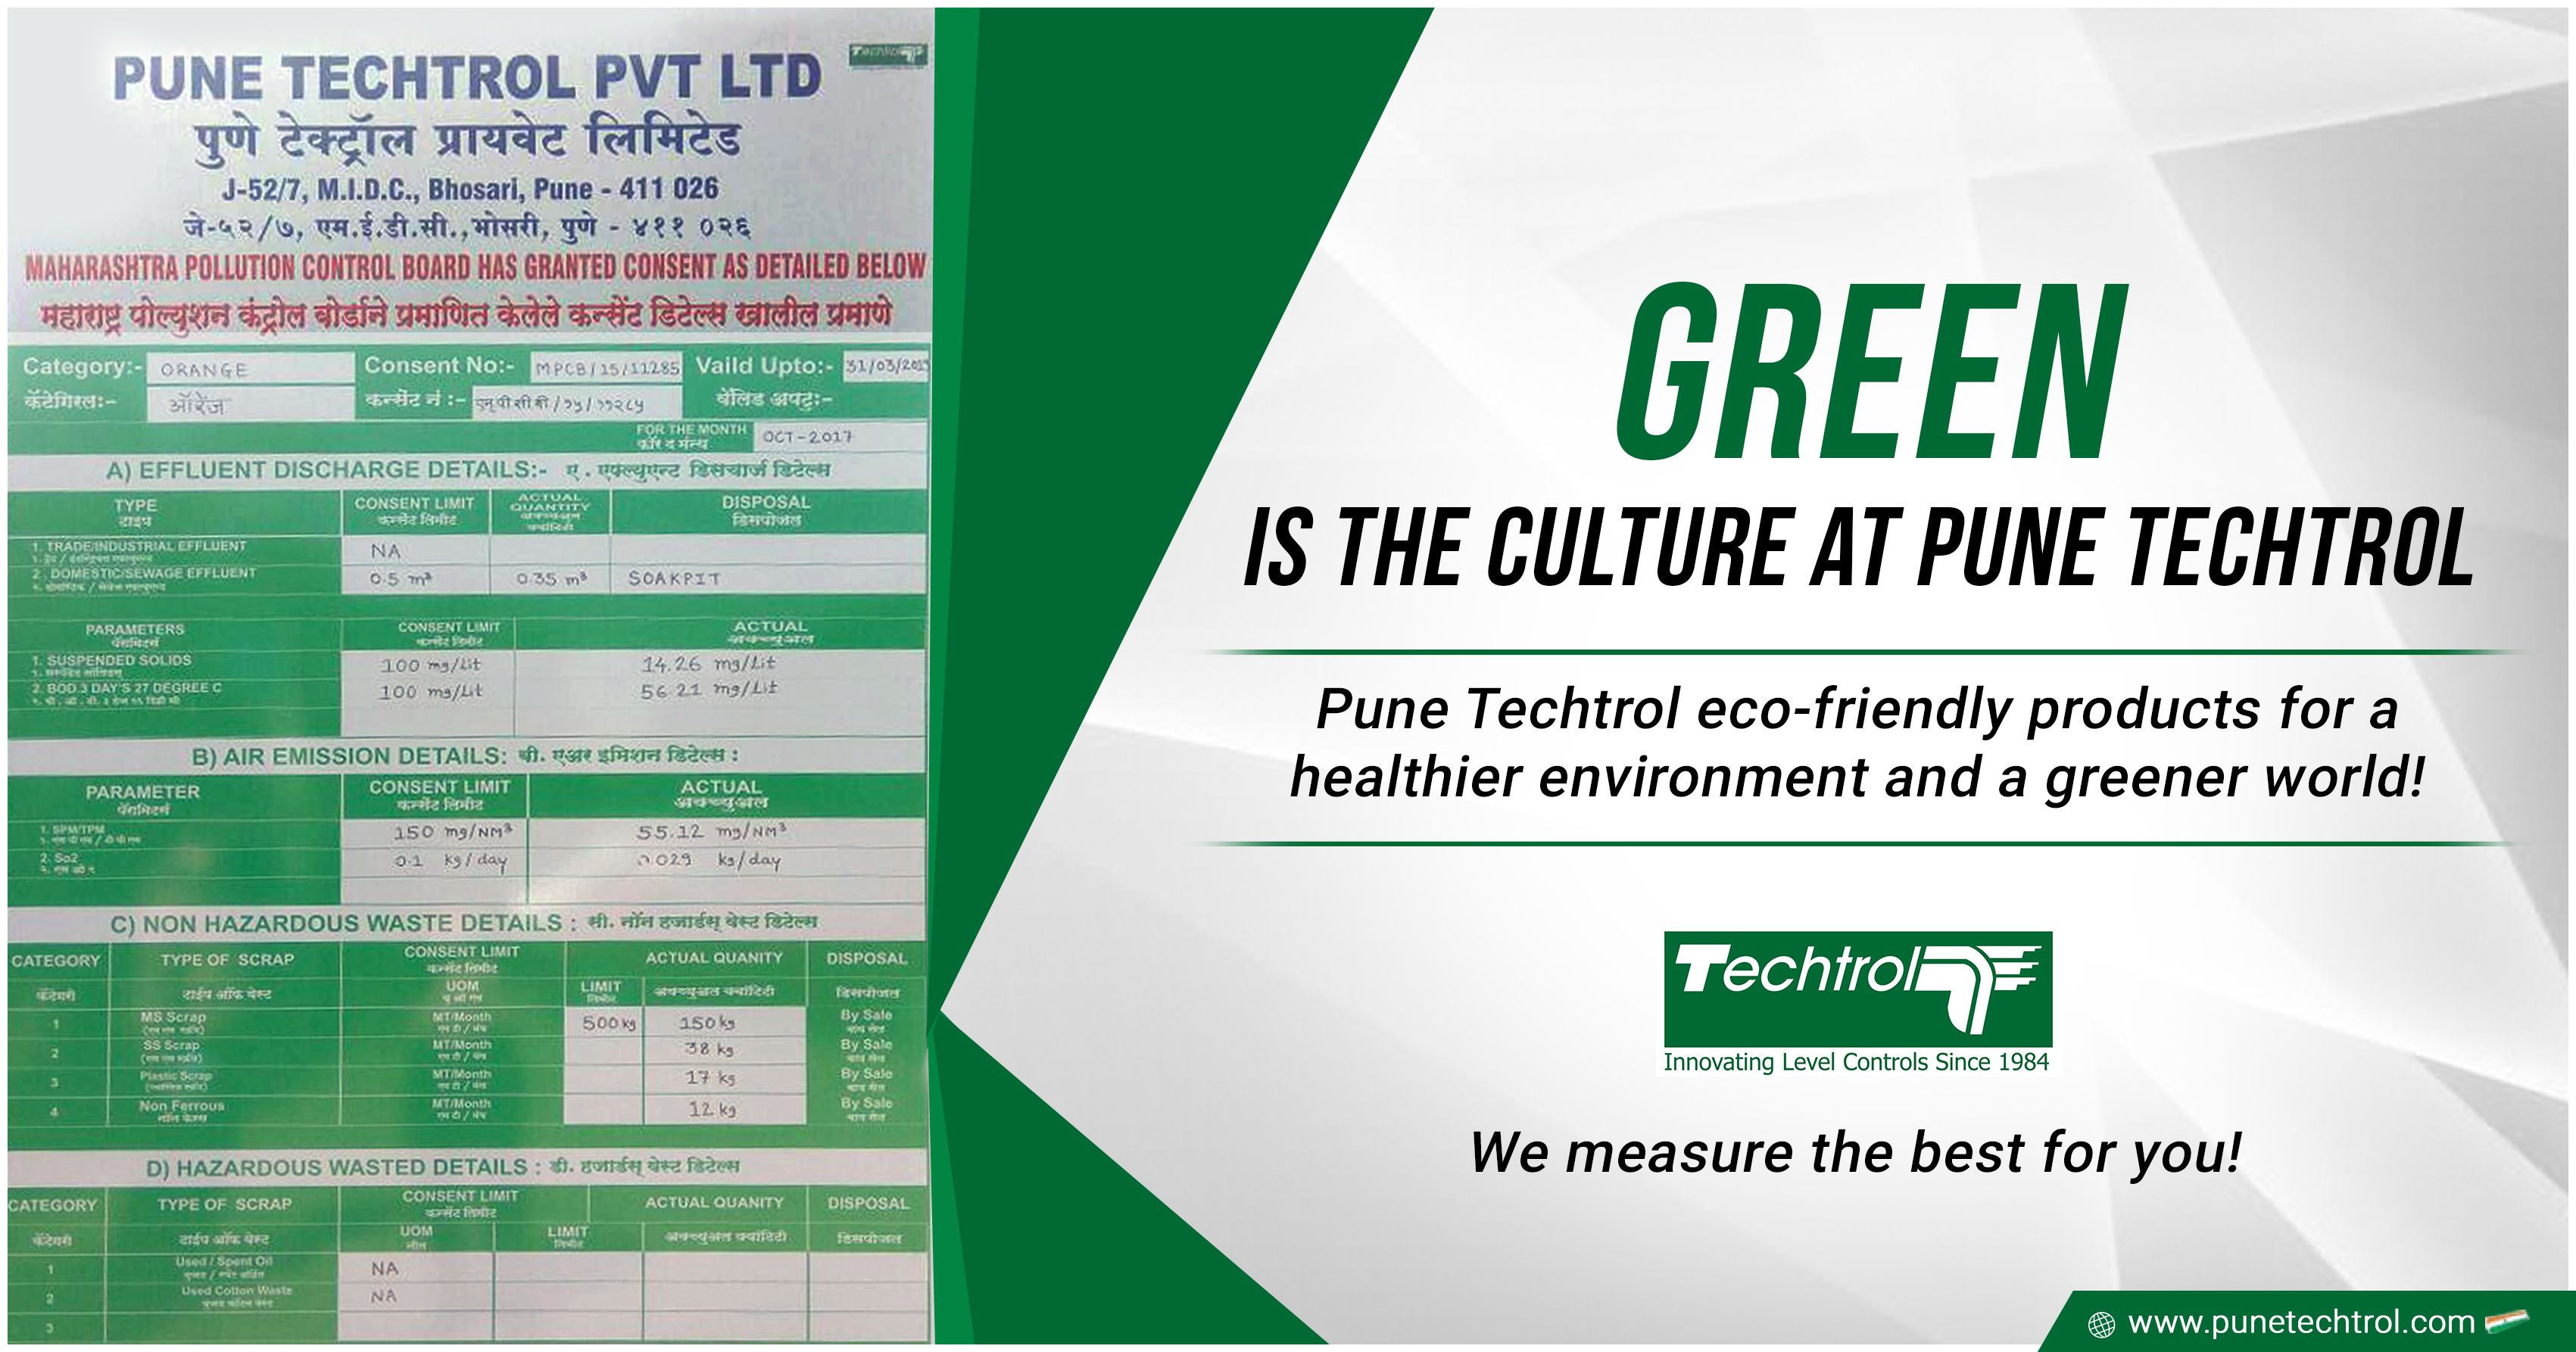 Green is the culture at Pune Techtrol; certified as a Green Channel Supplier